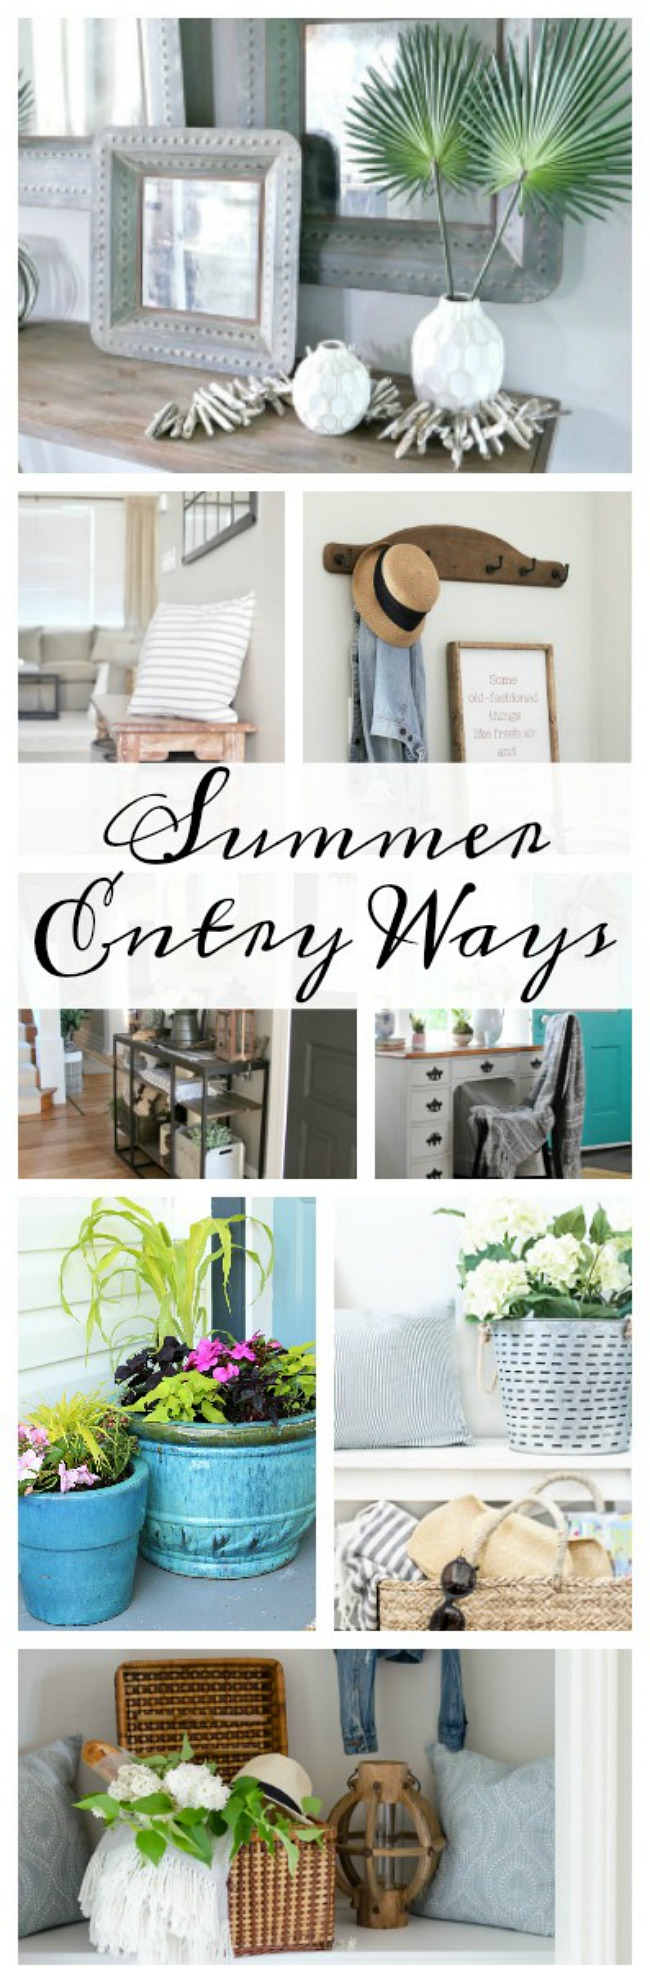 Beautiful summer decorating ideas for your front entry ways.